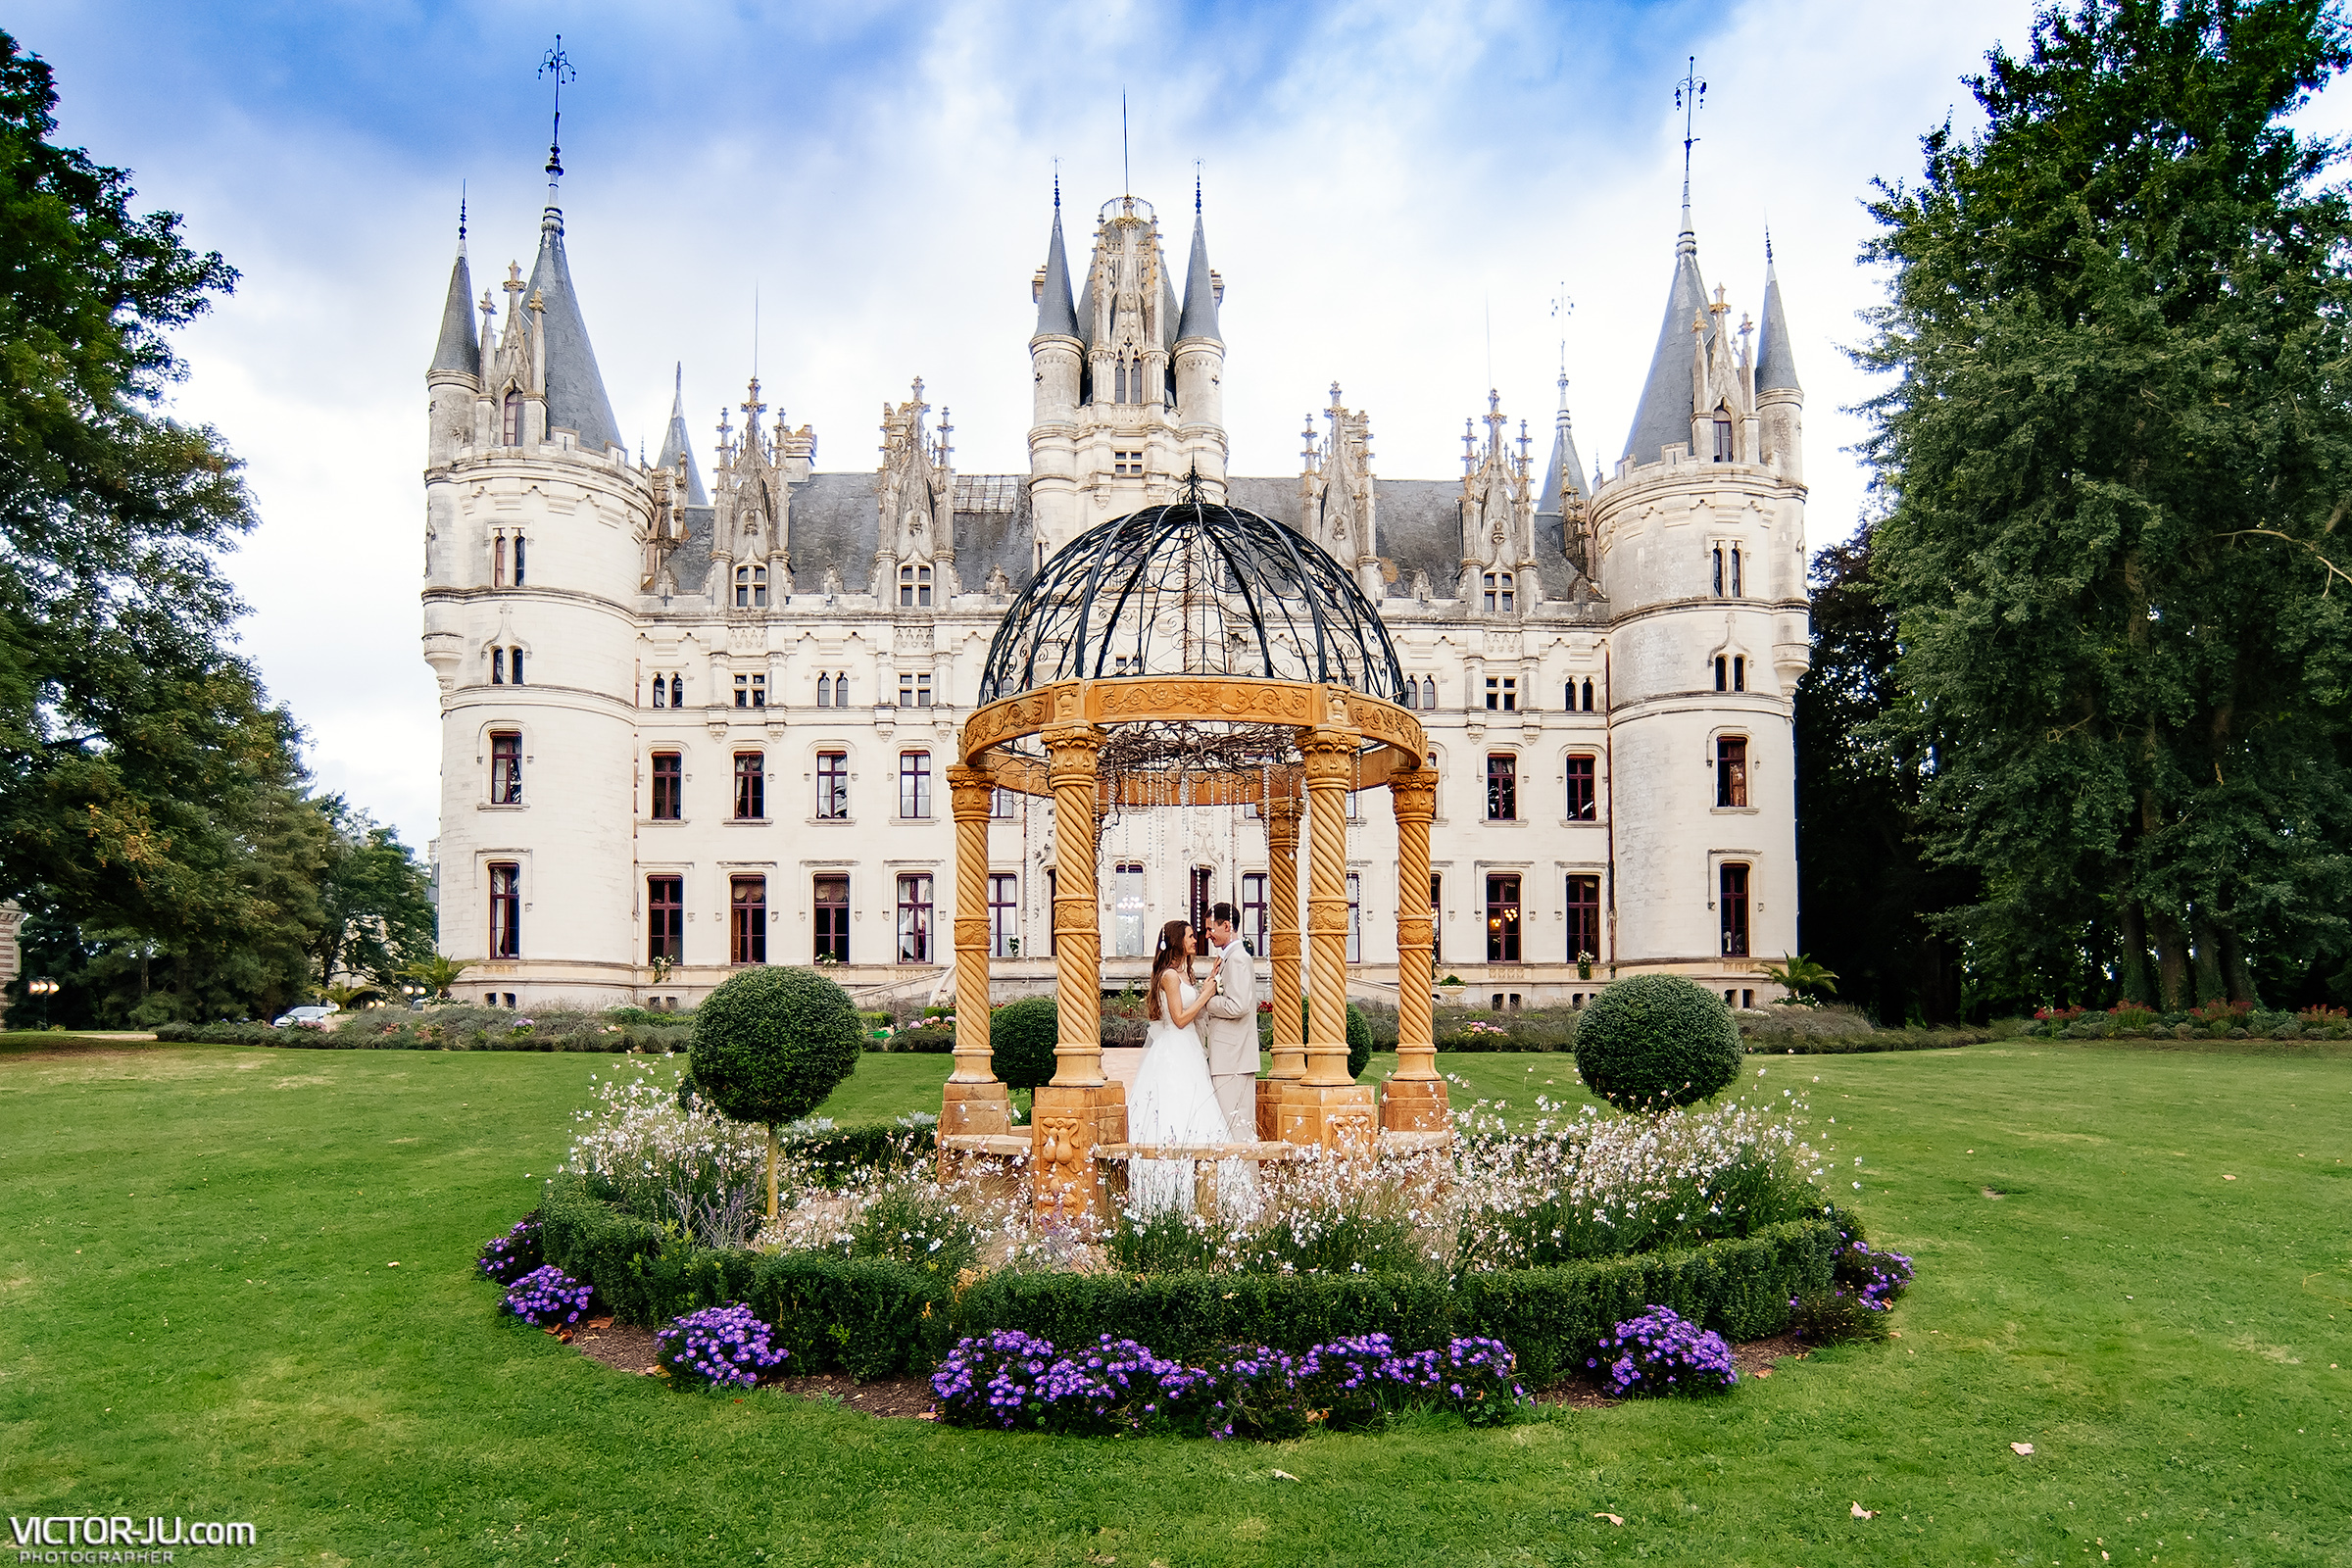 Wedding in France castle chateau de challain